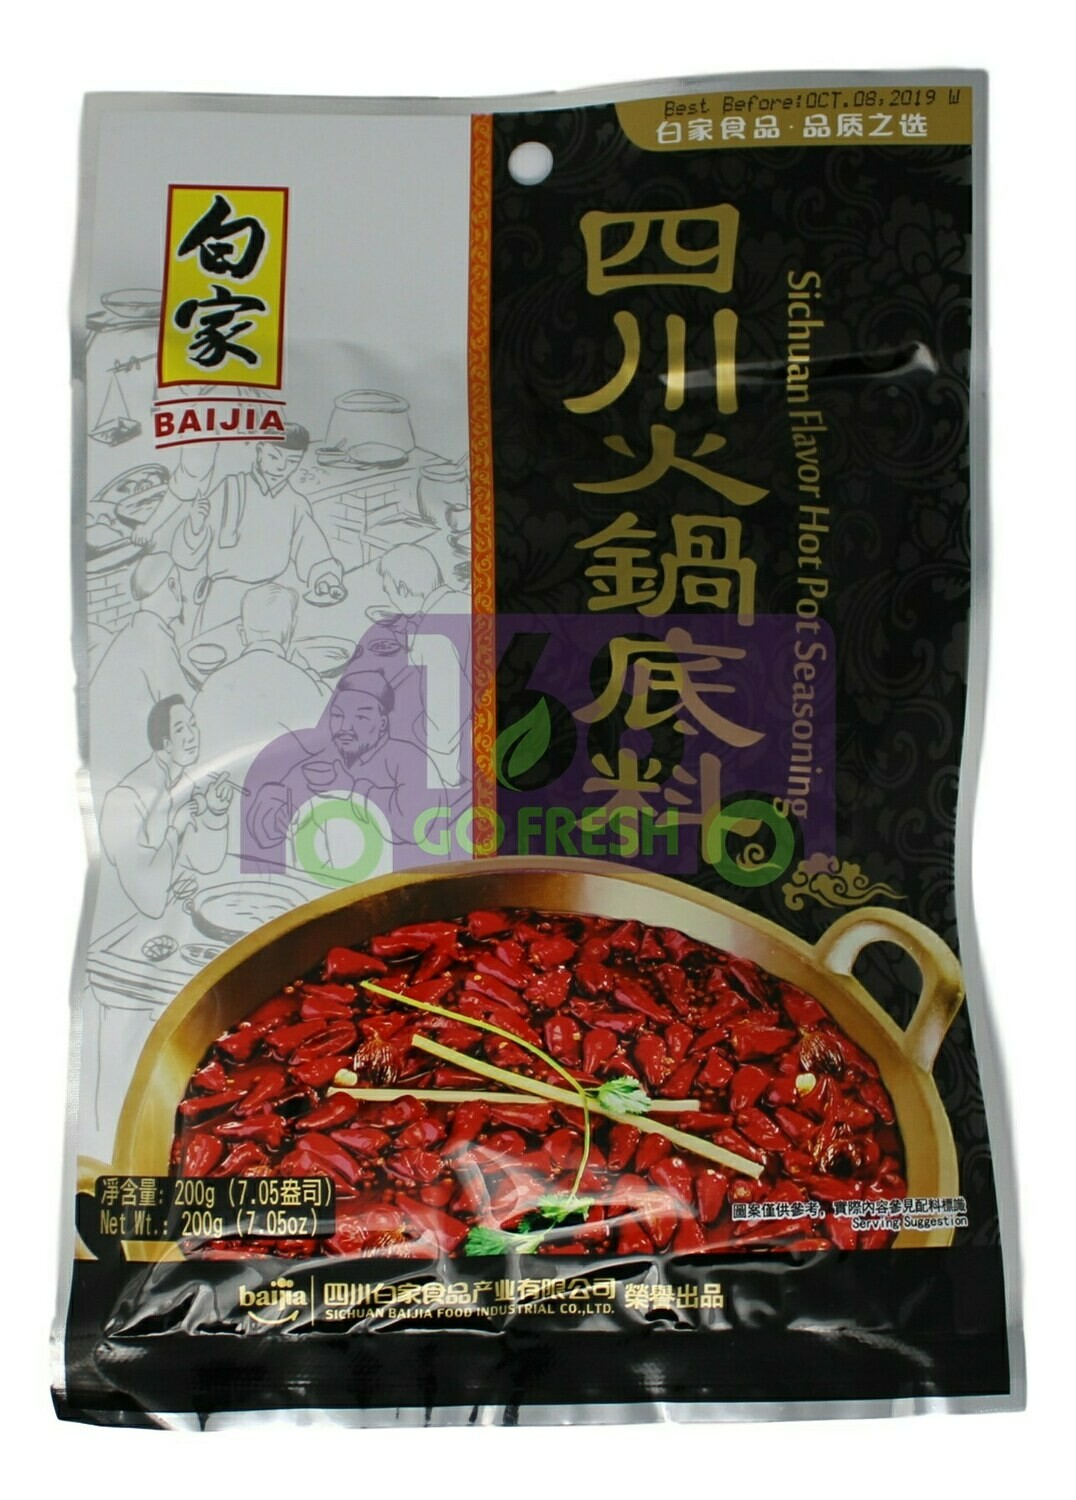 BAIJIA SICHUAN HOT-POT SEASONING 白家 四川火锅底料(200G)